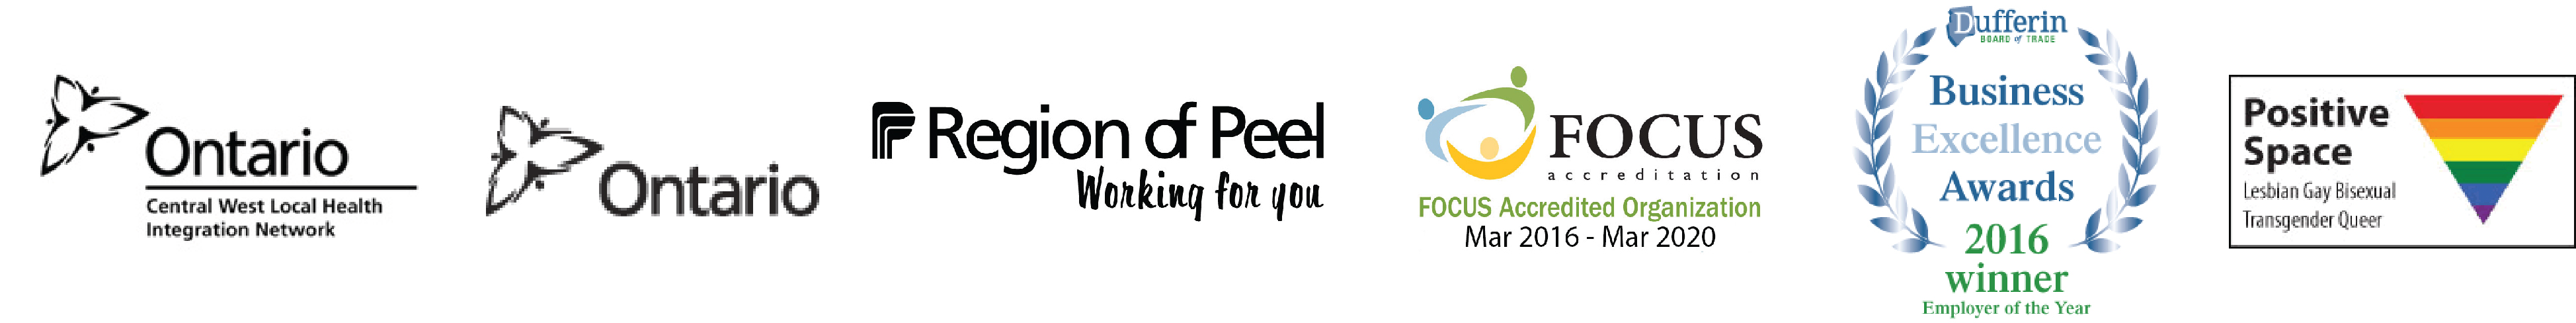 Funding Sponsors Region of Peel, Ontario West Local Health Integration Network, Province of Ontario, Focus Accreditation Organization